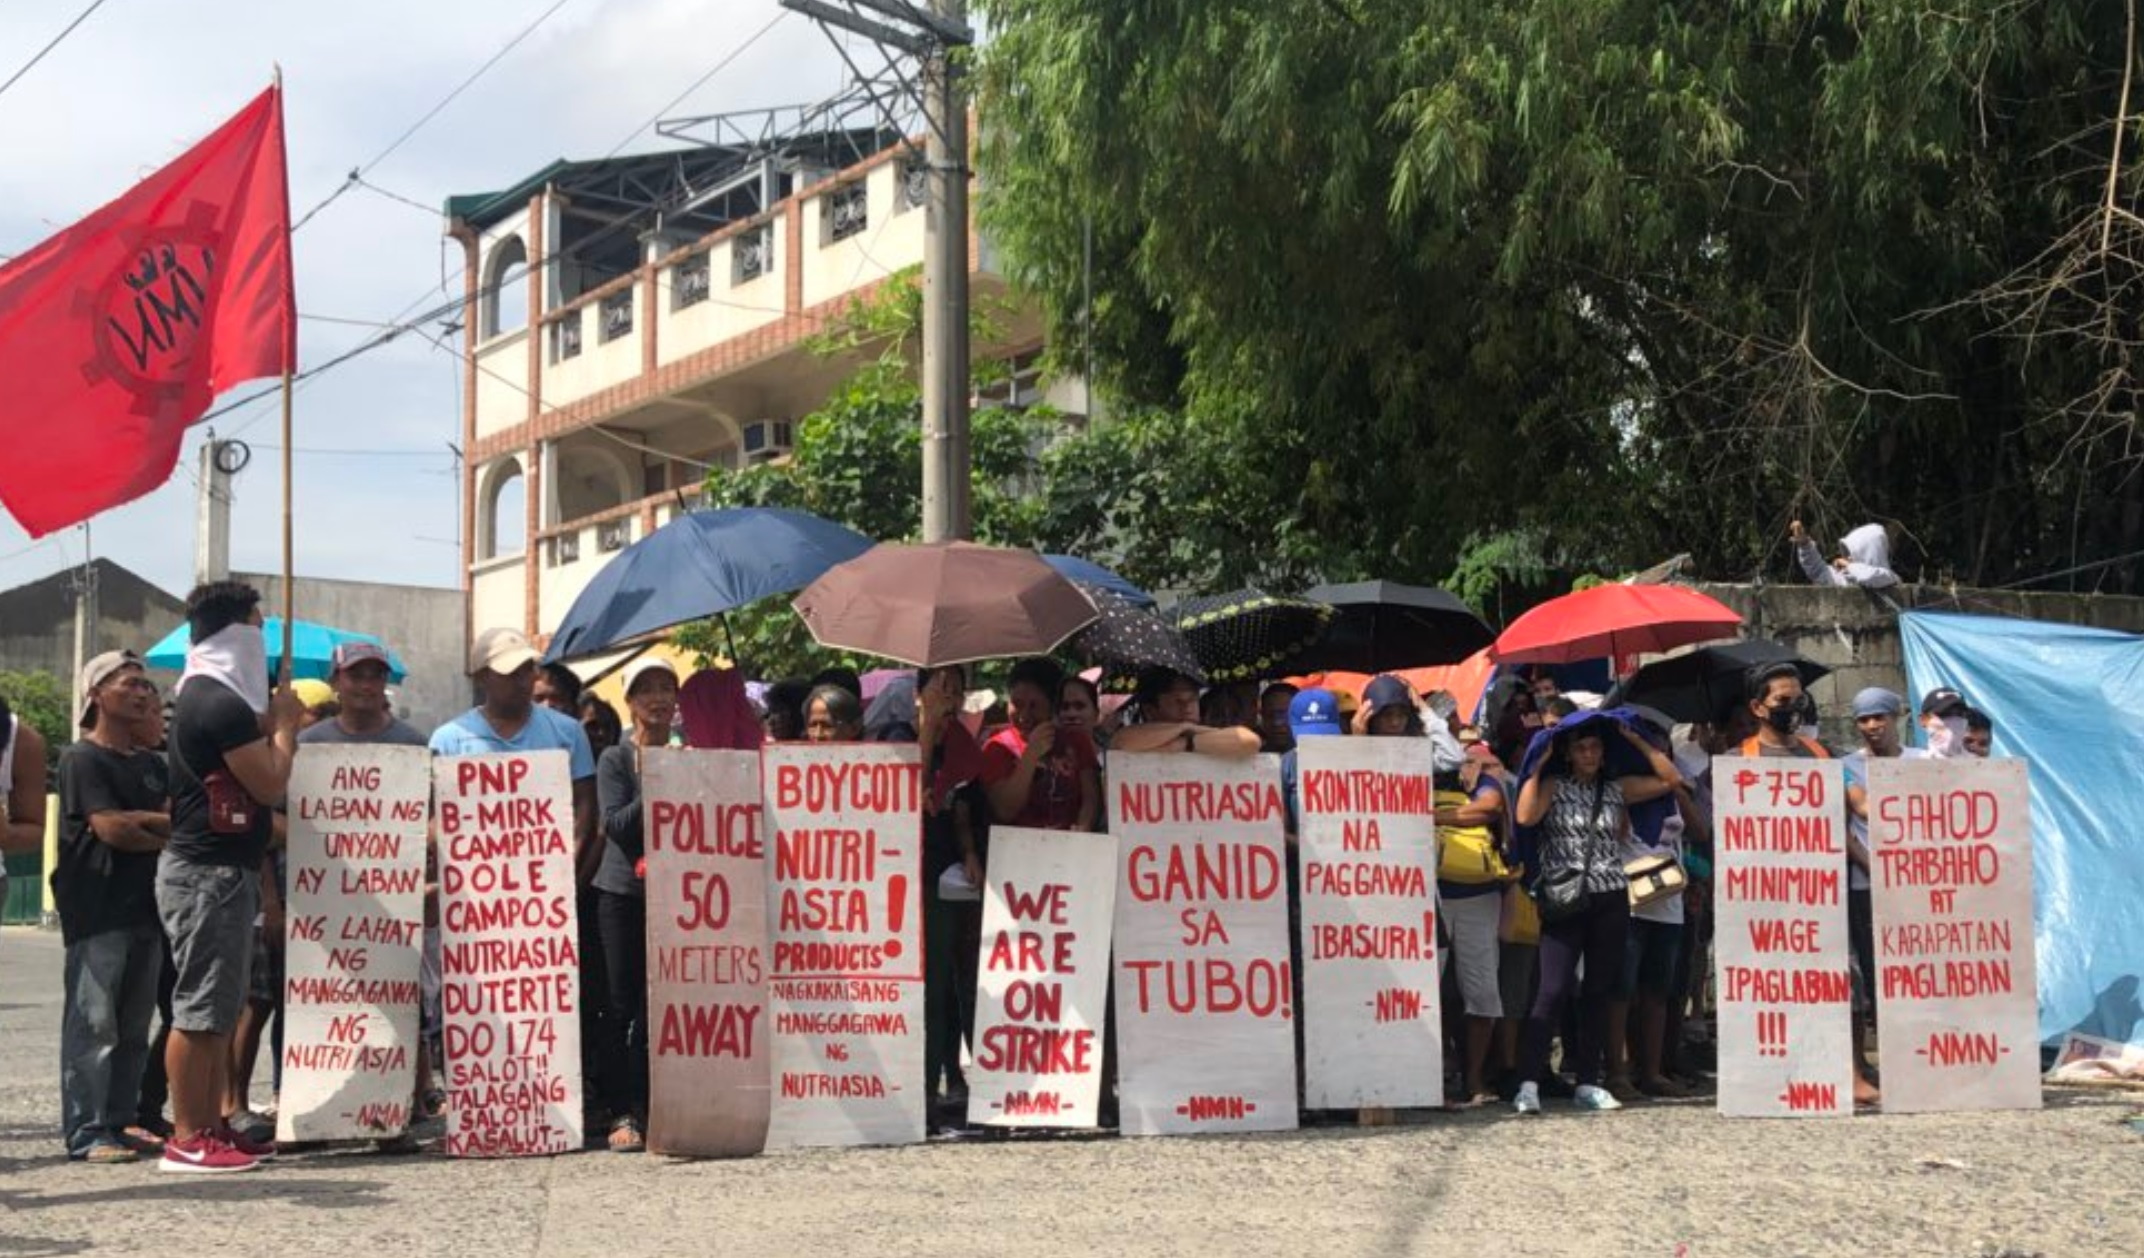 Philippines: Workers at NutriAsia factory face lawsuits and suffer